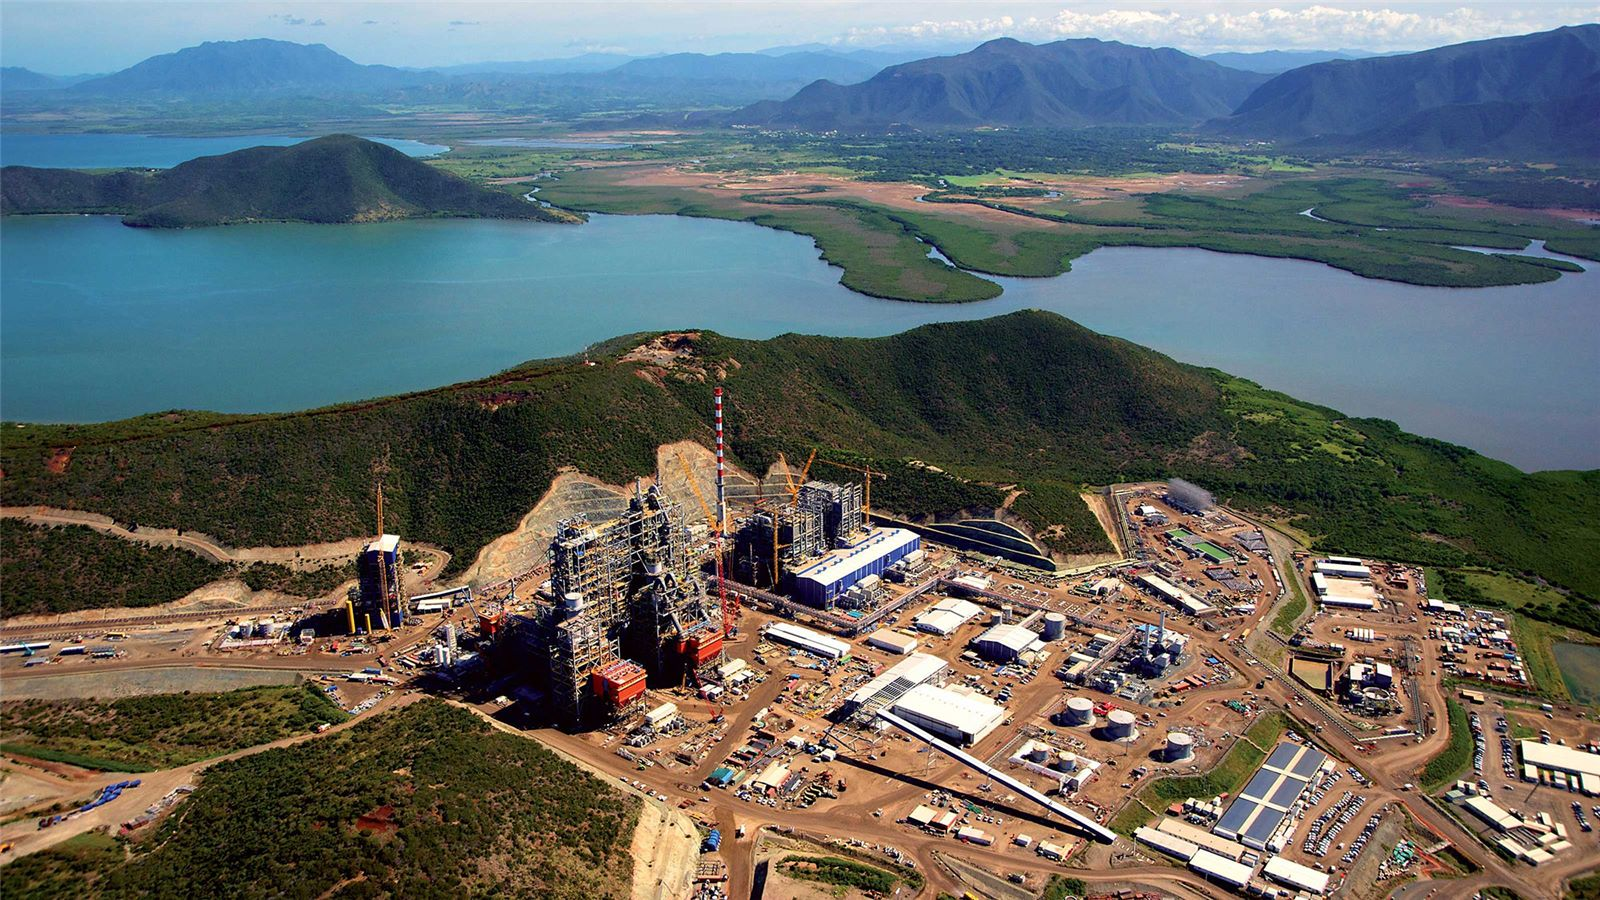 Water supply to the Koniambo nickel mine in New Caledonia